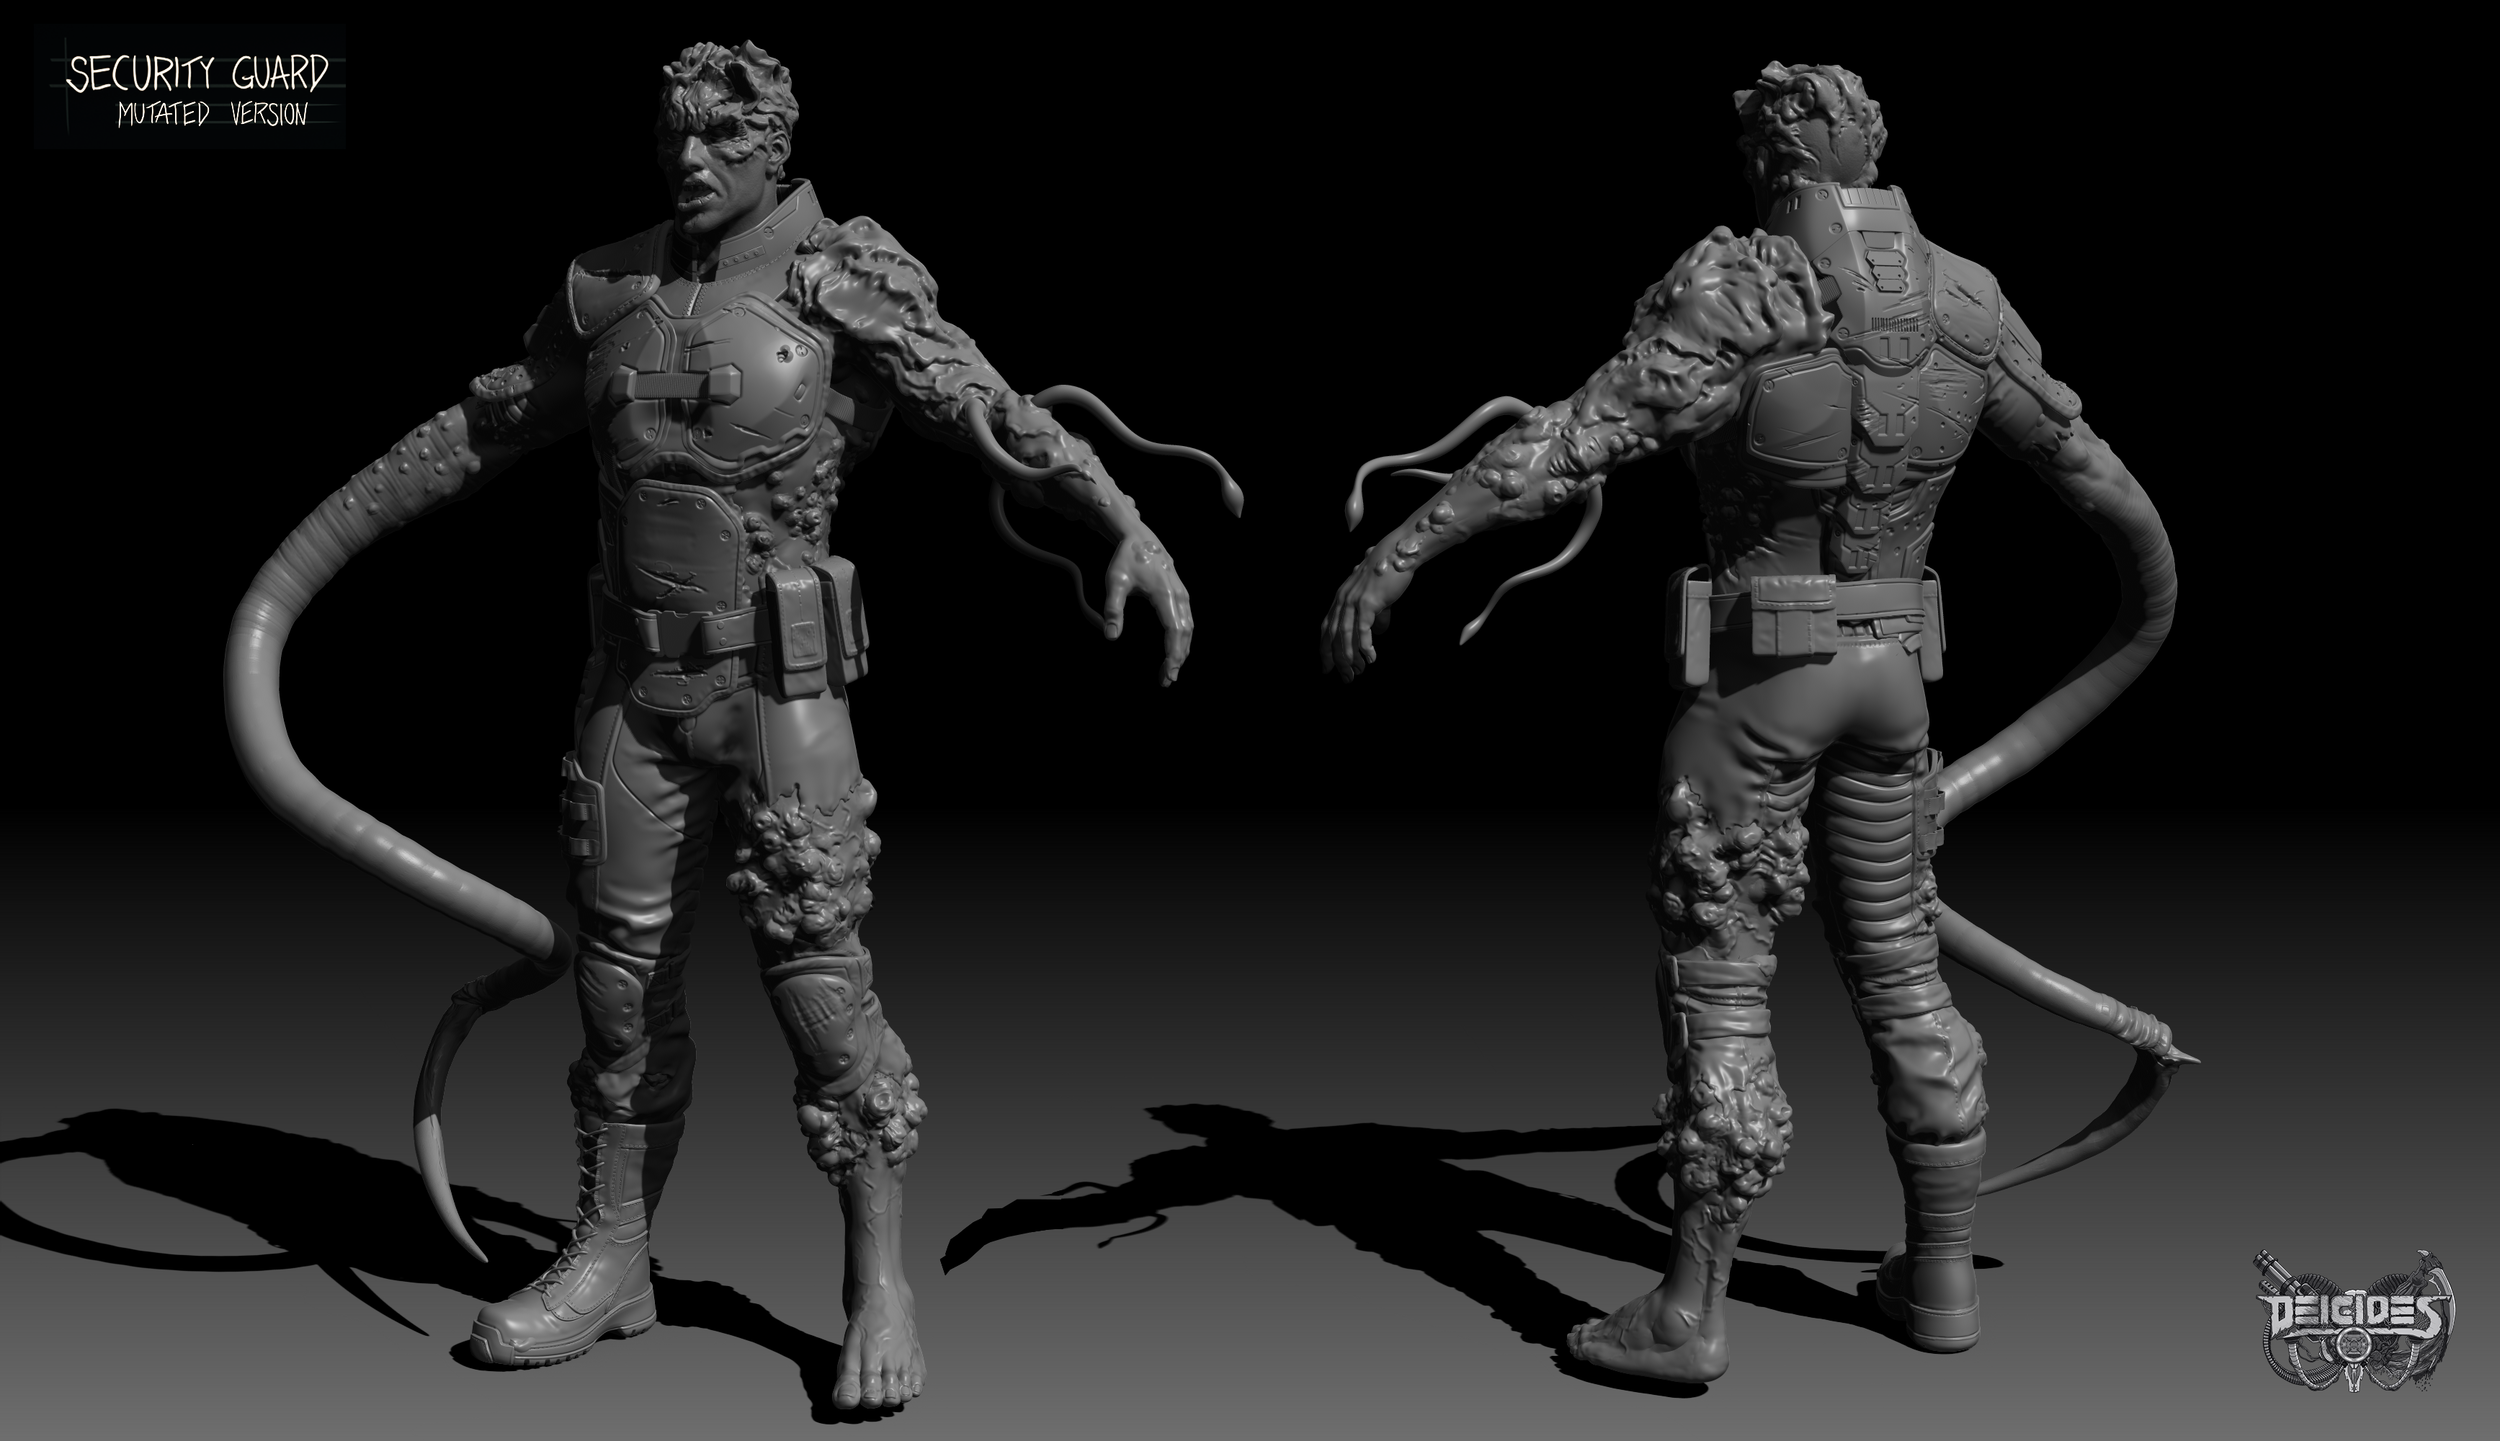 Security_guard_mutated_zbrush.png